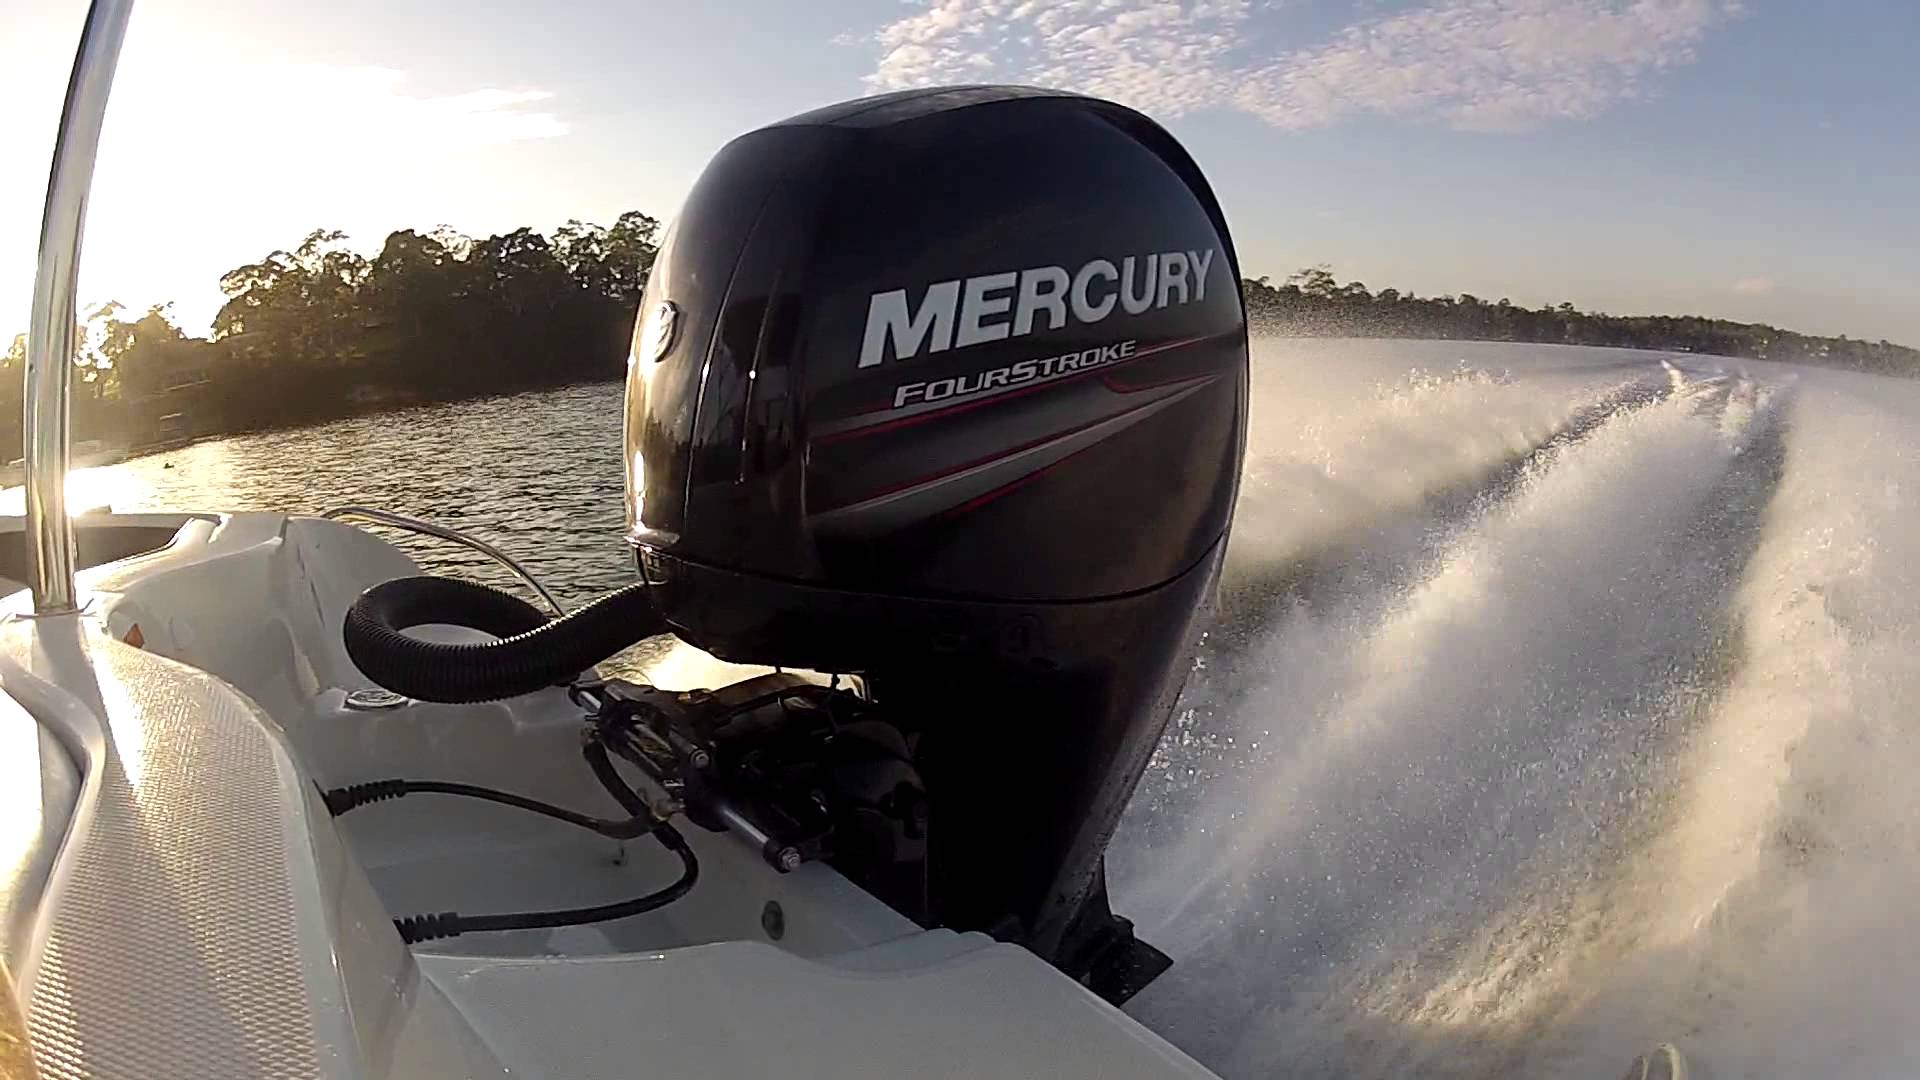 mercury 500 wiring issues mercury outboard engine won t start  troubleshooting guide   mercury outboard engine won t start